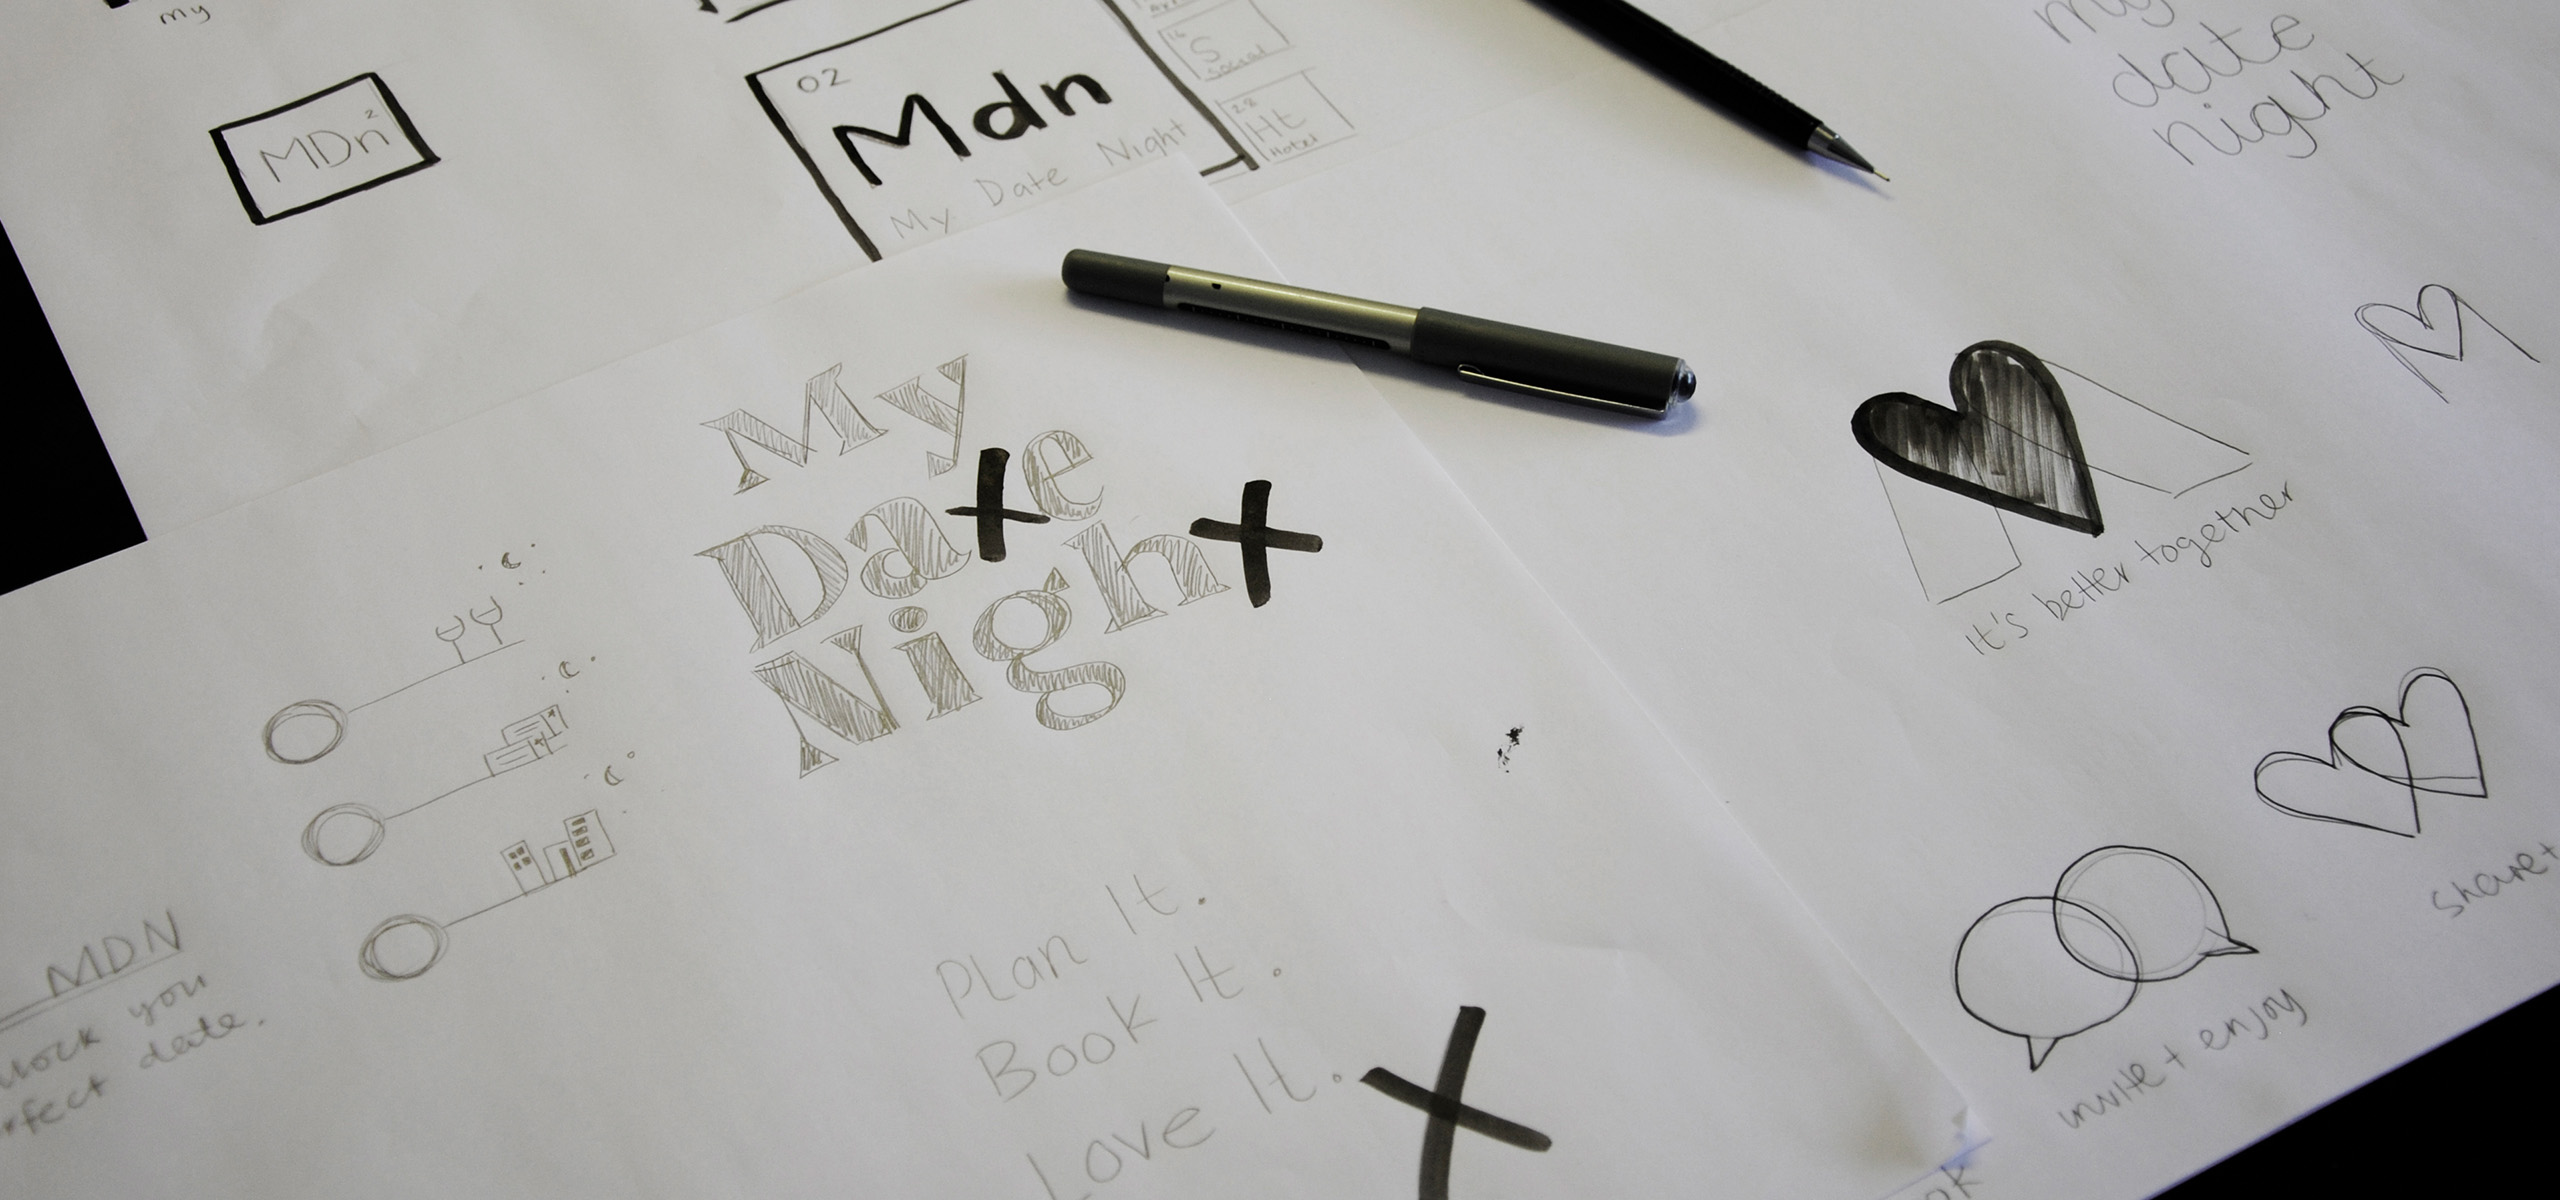 Initial sketches for new startup brand My Date Night, designed by White Bear Studio